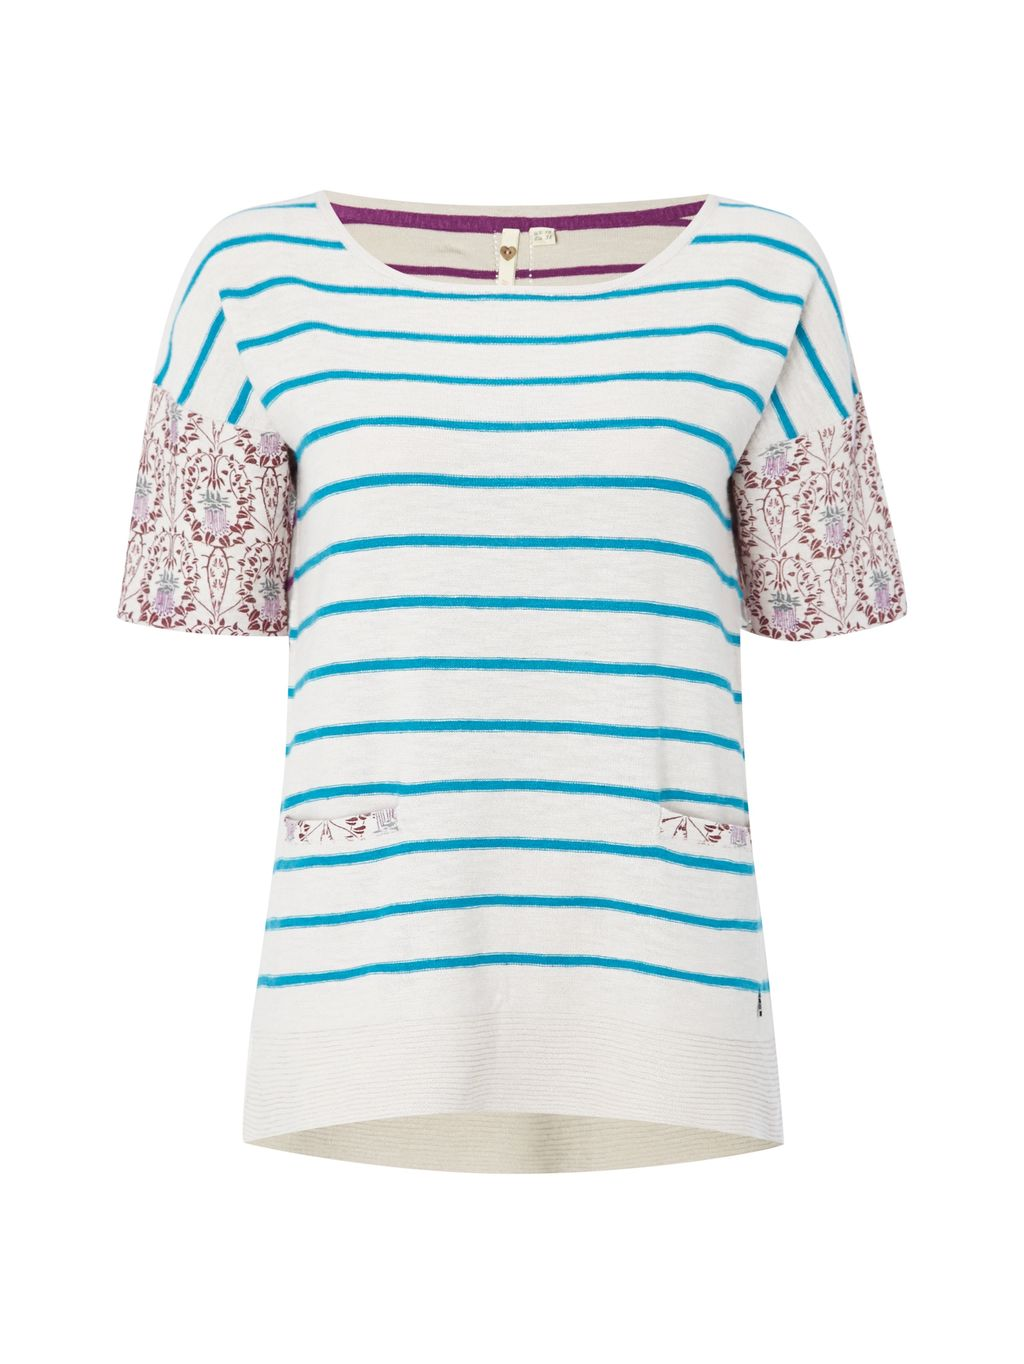 Orient Knit Top, Multi Coloured - neckline: round neck; pattern: horizontal stripes; predominant colour: ivory/cream; secondary colour: turquoise; occasions: casual, creative work; length: standard; style: top; fibres: cotton - mix; fit: body skimming; sleeve length: short sleeve; sleeve style: standard; texture group: knits/crochet; pattern type: knitted - fine stitch; pattern size: big & busy (top); multicoloured: multicoloured; season: s/s 2016; wardrobe: highlight